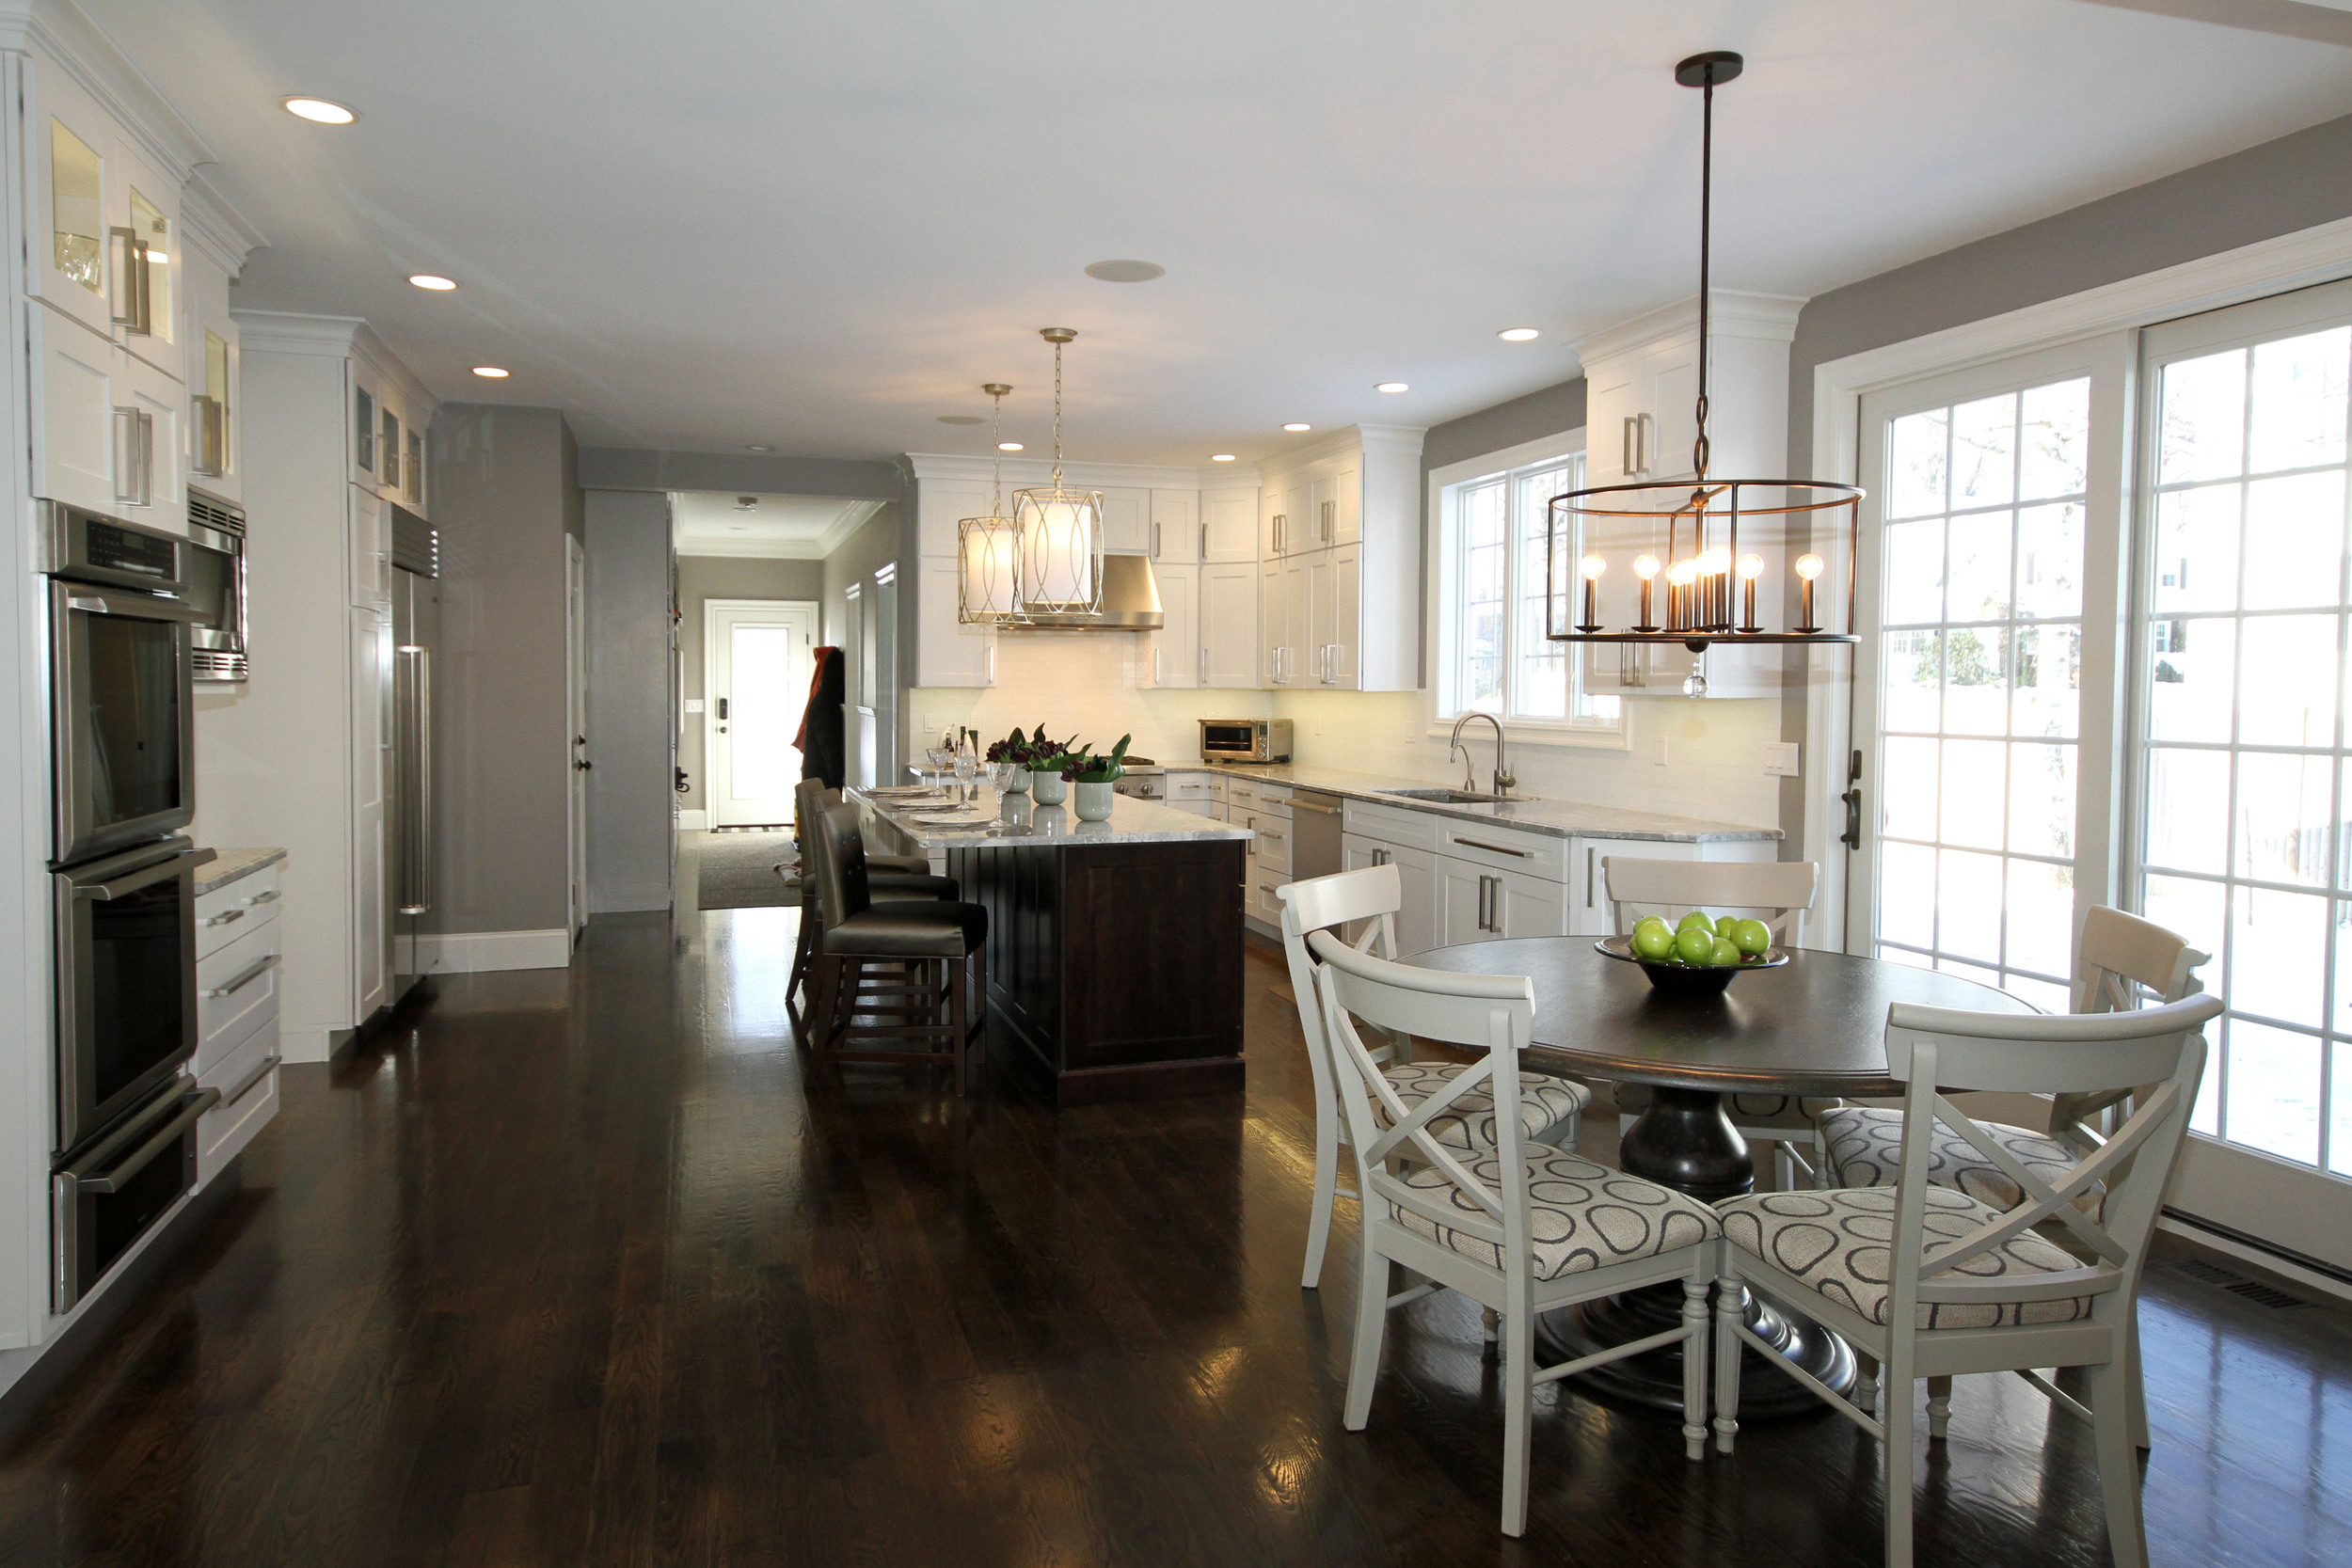 kitchen with dining area 1.jpg